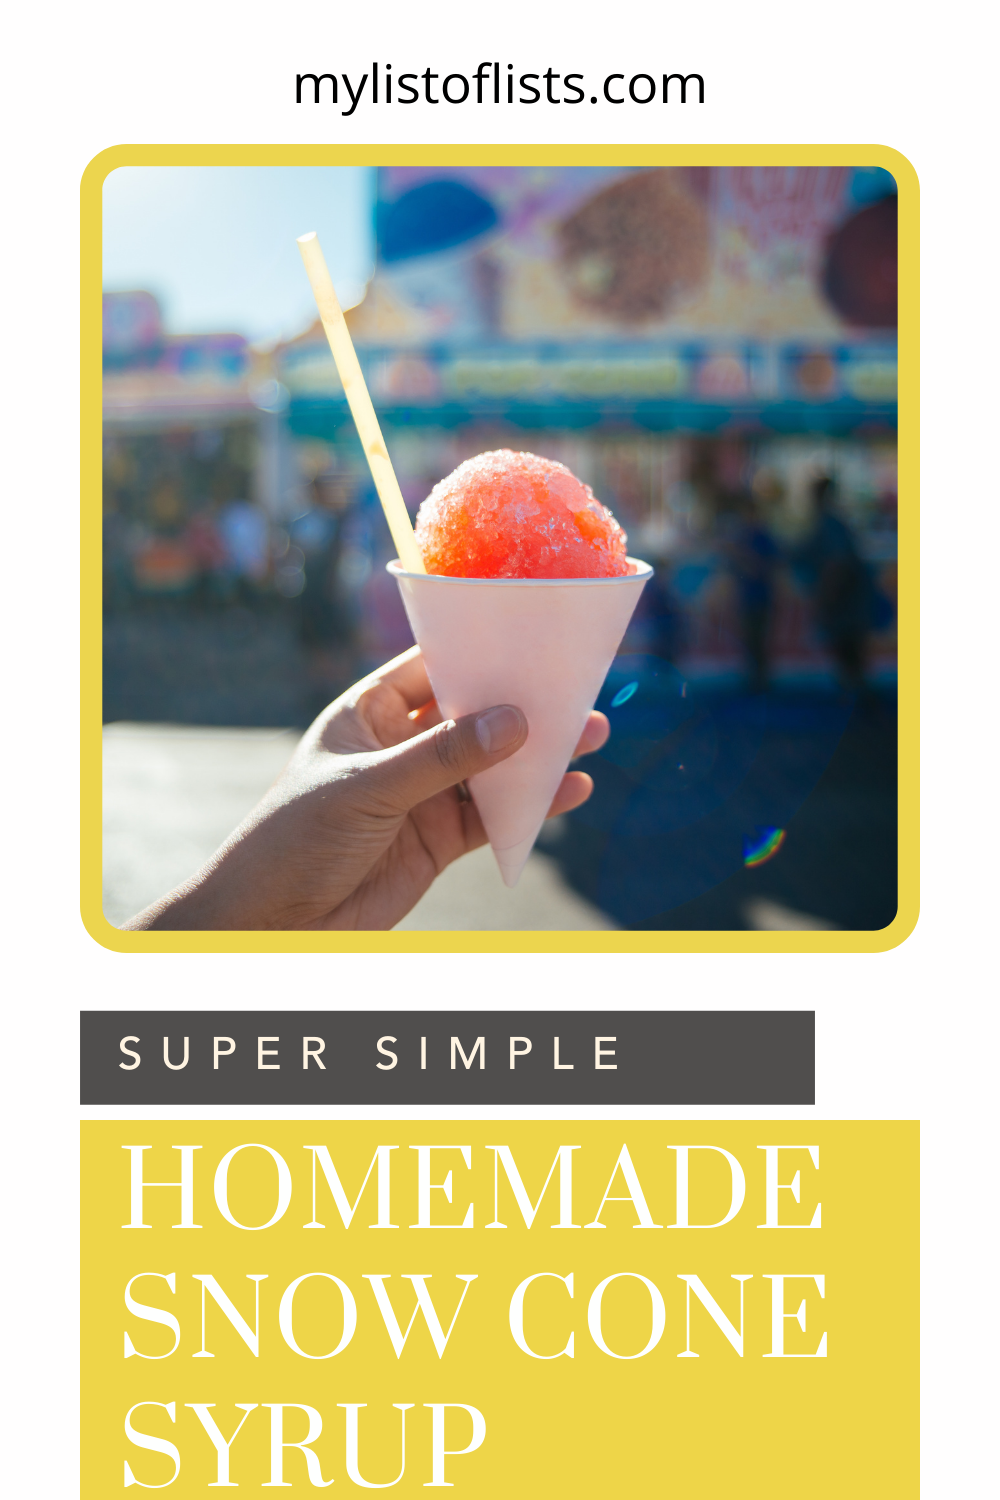 Mylistoflists.com will help you find whatever it is you're looking for. Learn to make things a little bit easier on yourself. Check out how to make easy snow cone syrup on your own!